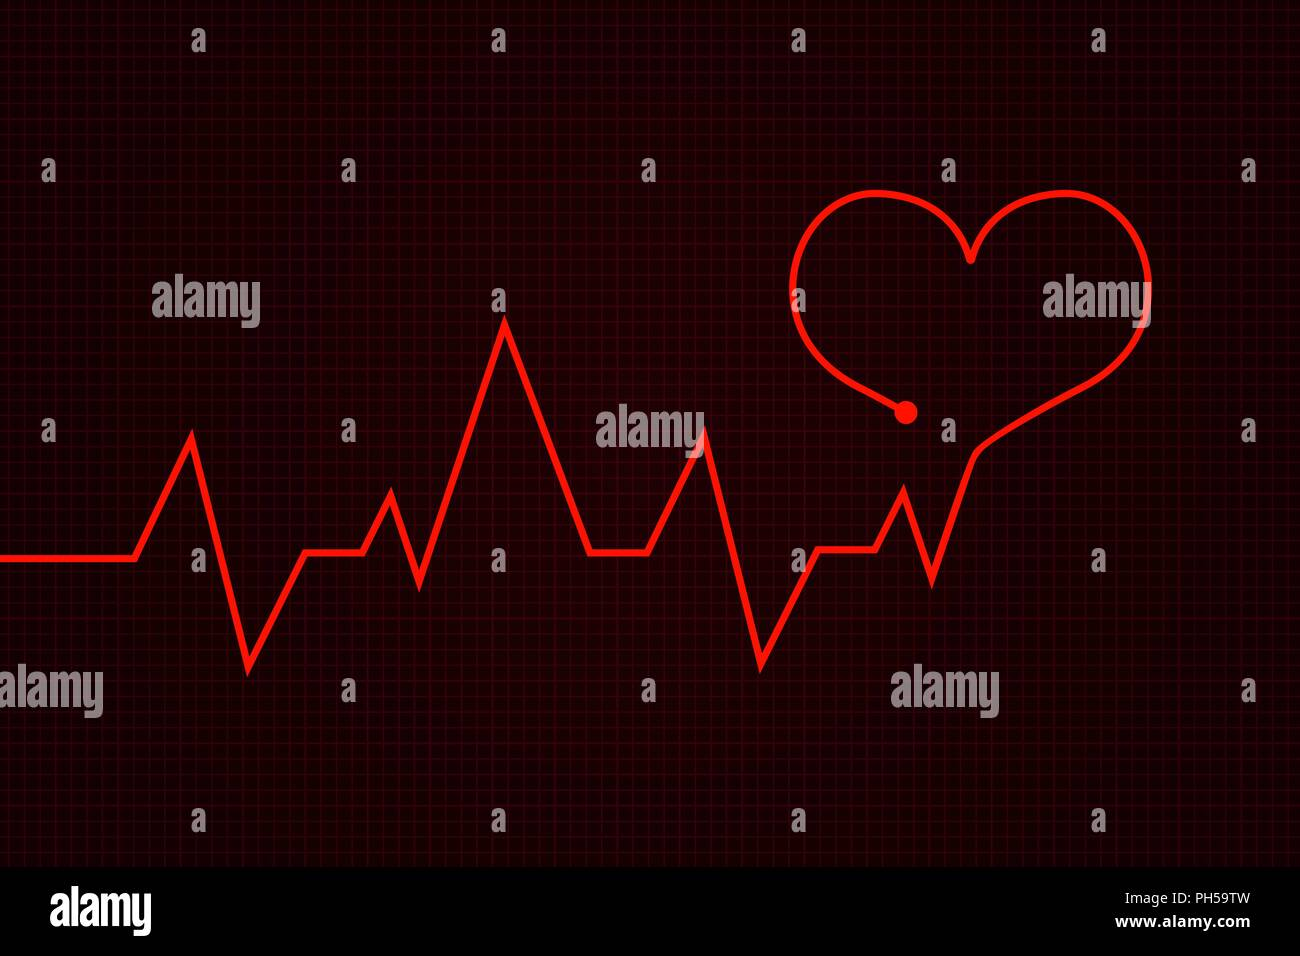 Heartbeat cardiogram graph with red heart stock vector art cardiogram graph with red heart ccuart Gallery